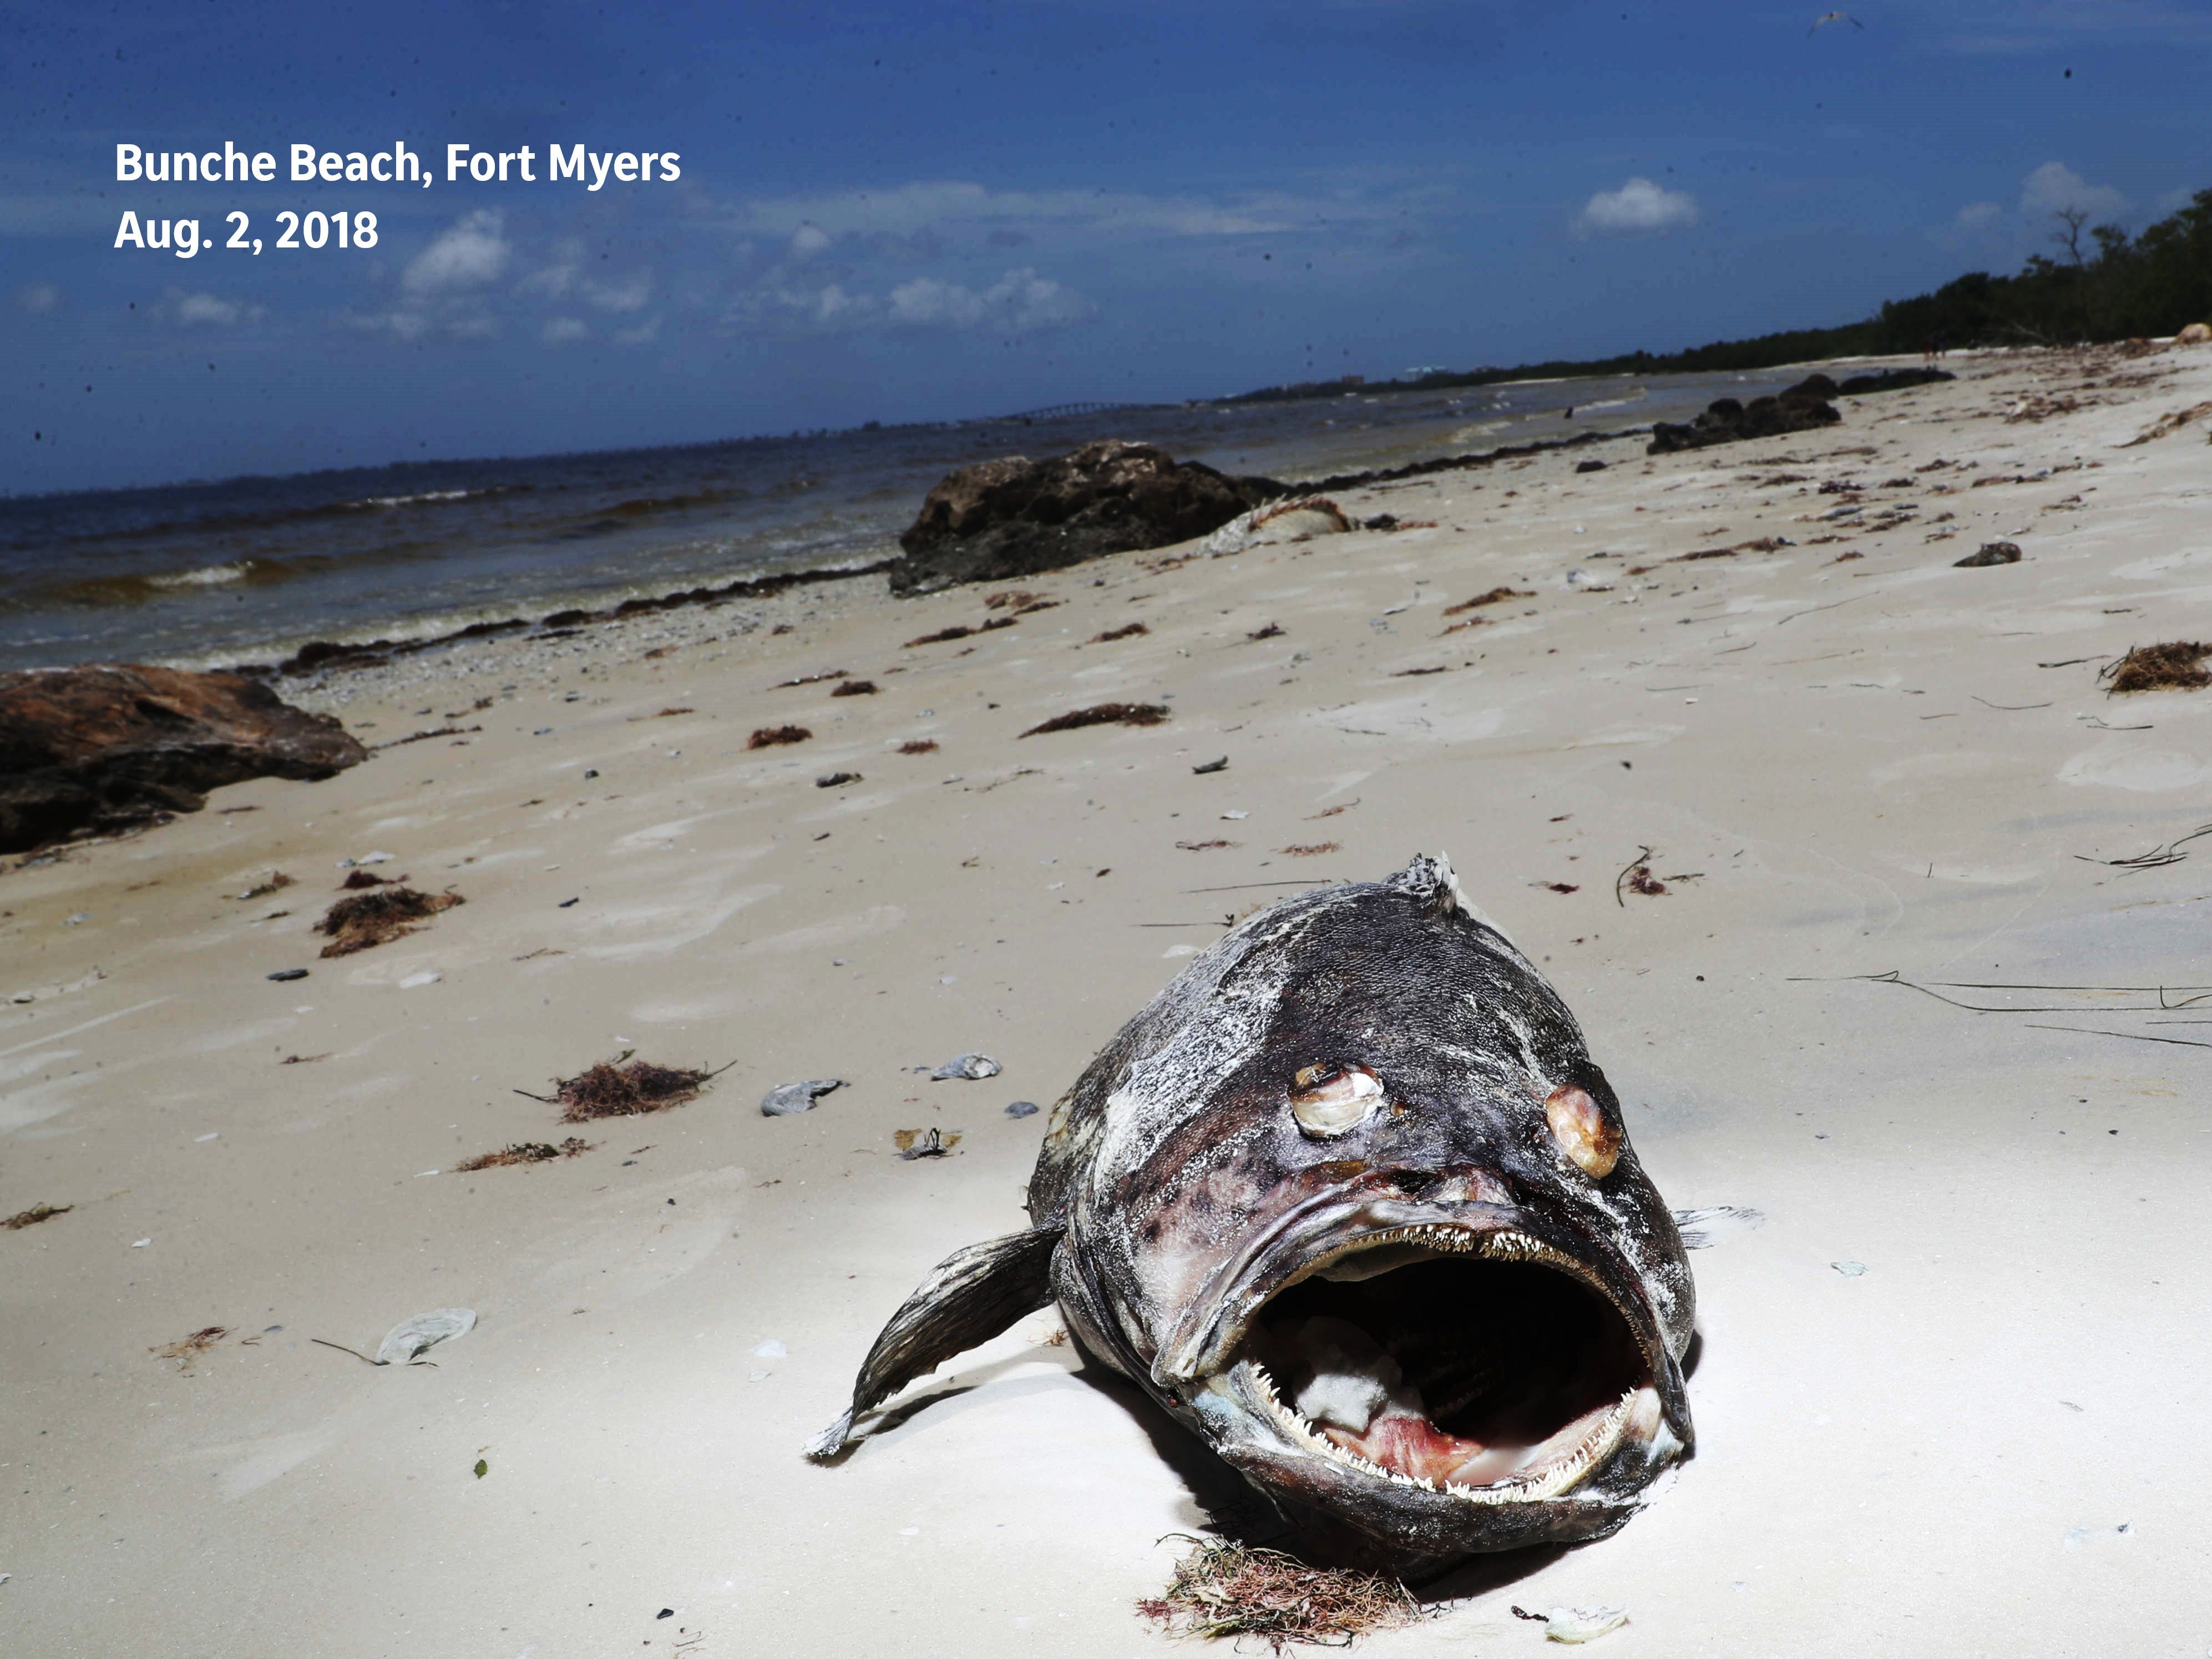 Before: A dead grouper among thousands of other fish was photographed on Aug. 2, 2018 on Bunche Beach in Fort Myers.